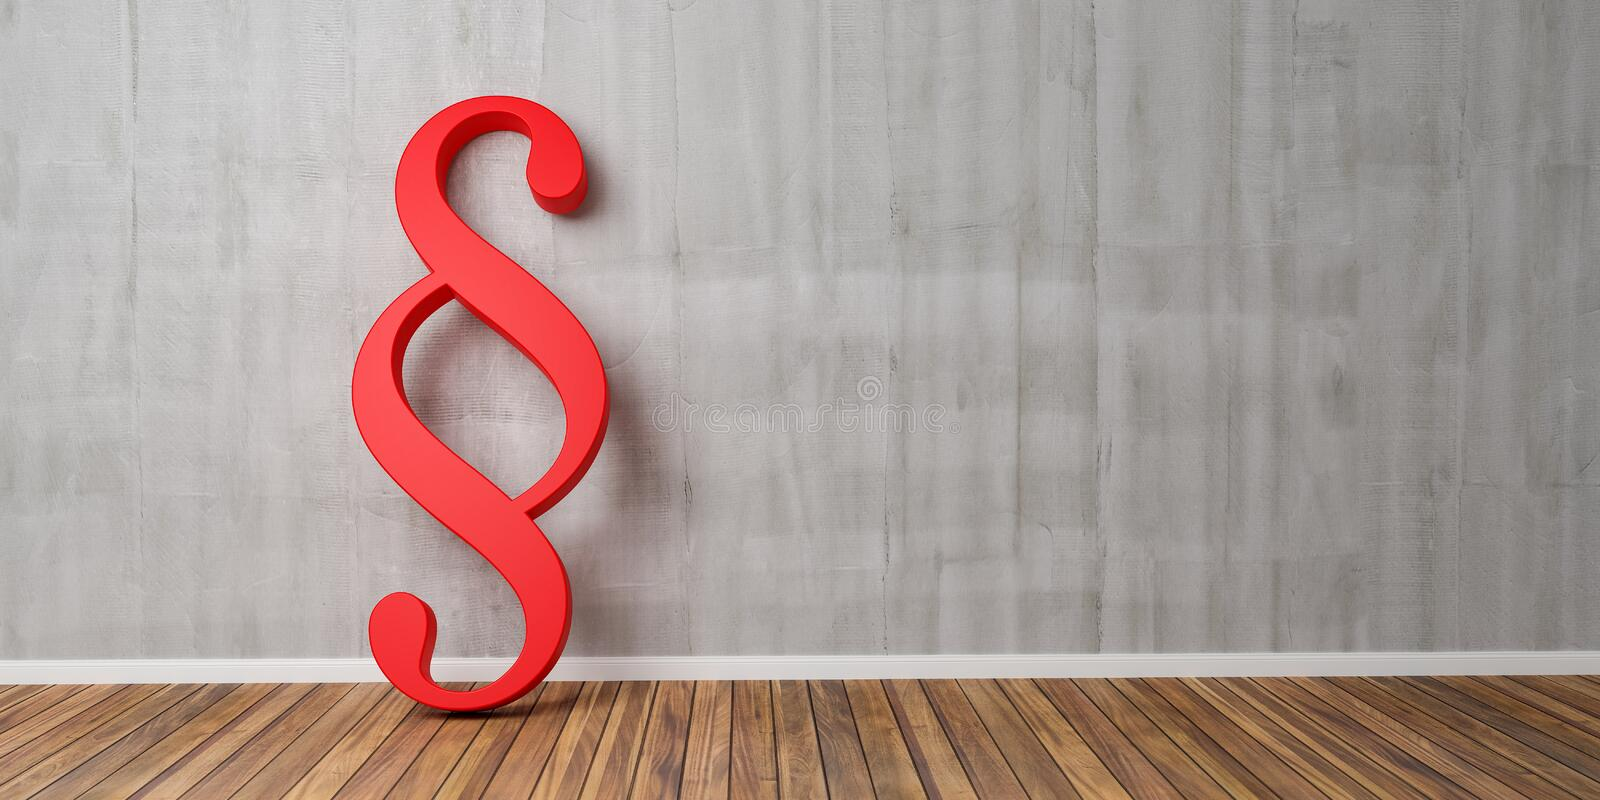 Red Paragraph smybol against a grey concrete wall - law and justice concept image - 3D Rendering royalty free illustration